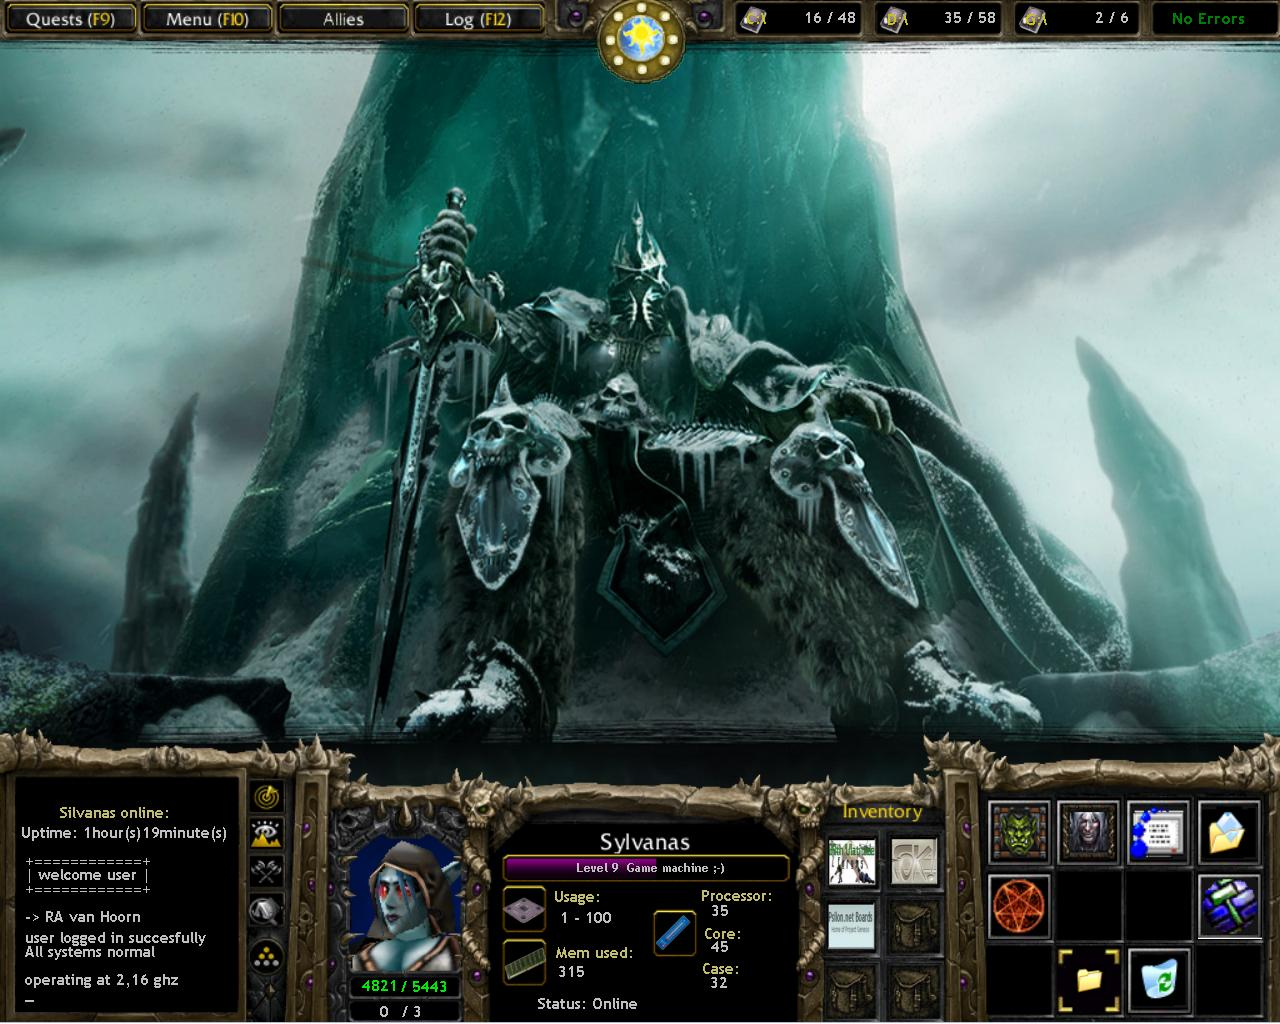 Title: warcraft III desktop